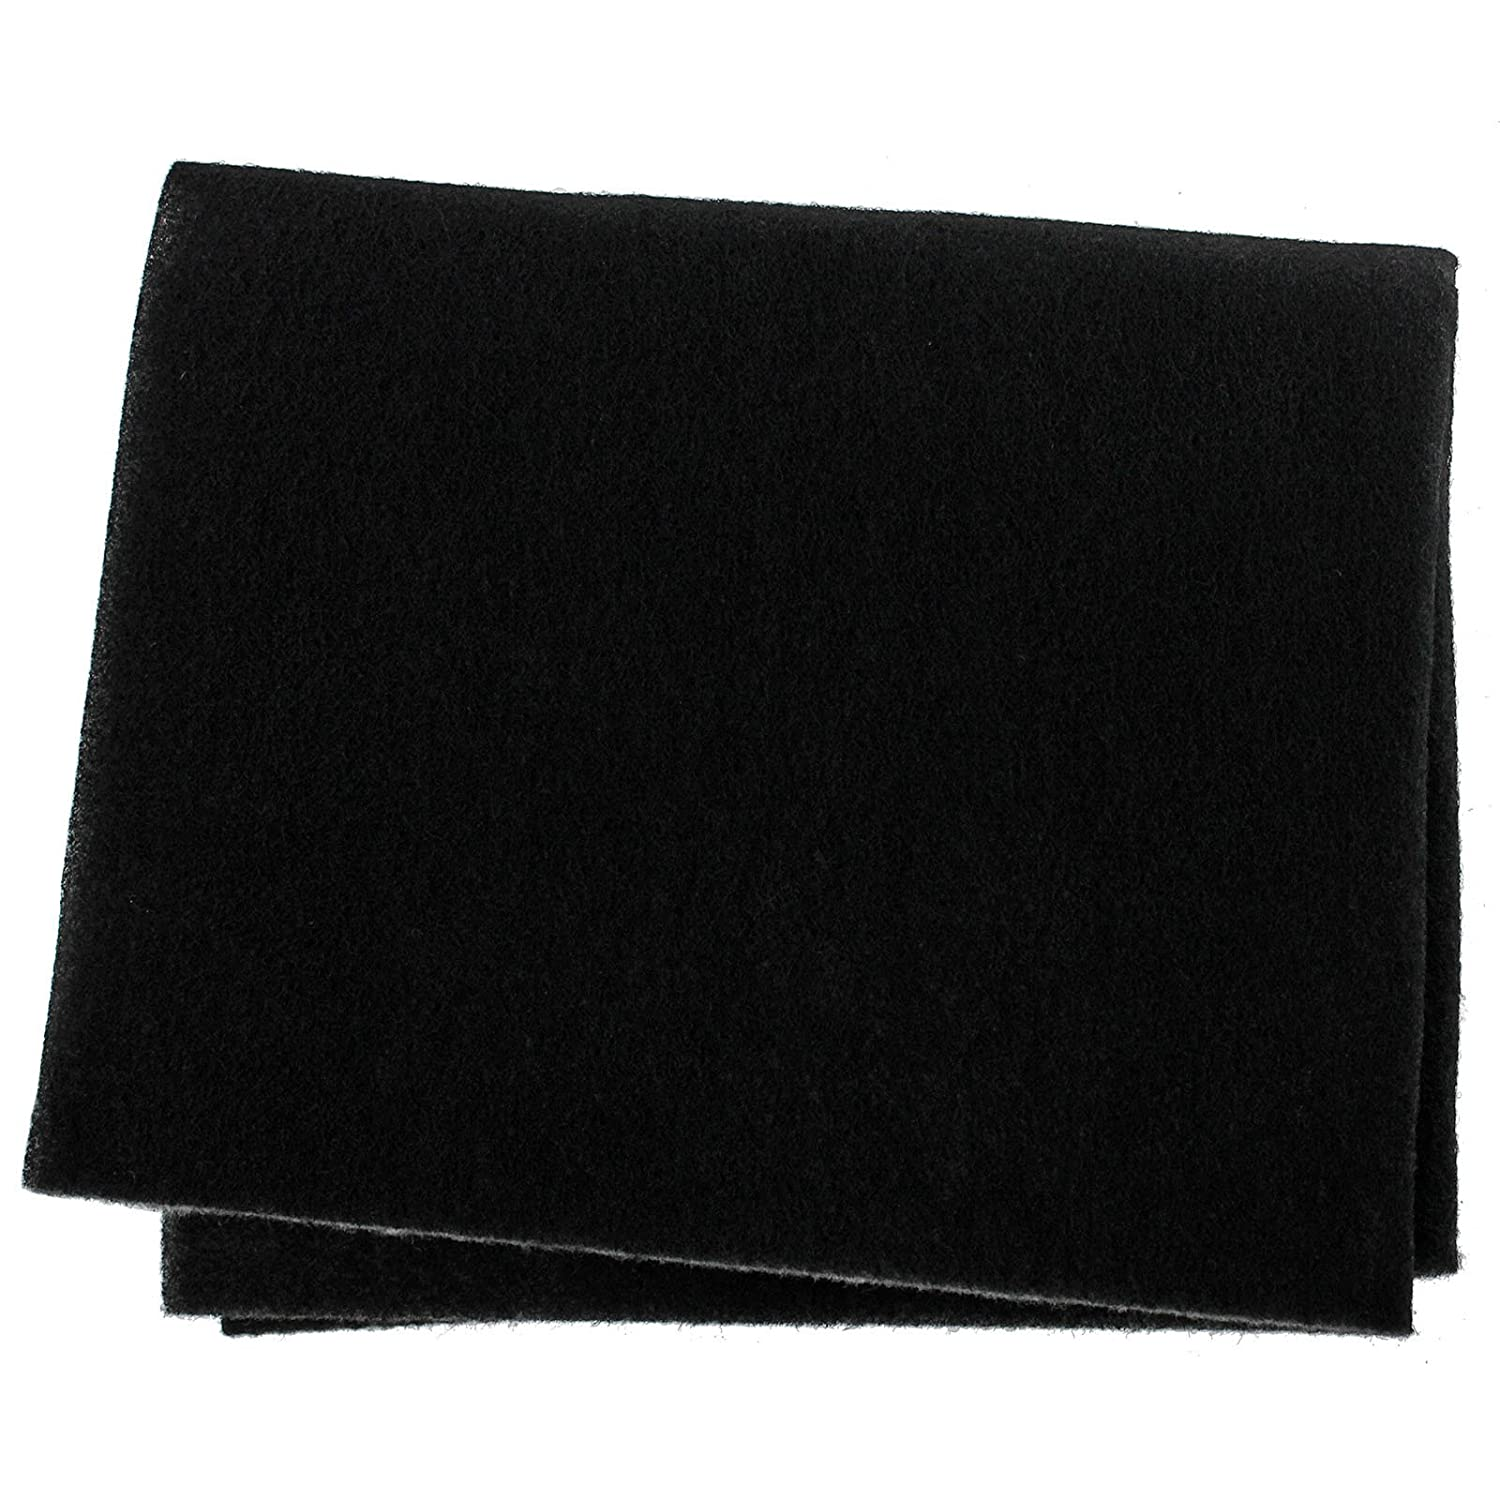 SPARES2GO Cooker Hood Grease Filter Kit for Neff Kitchen Extractor Fan Vent 6 x Grease, 3 x Carbon Filters